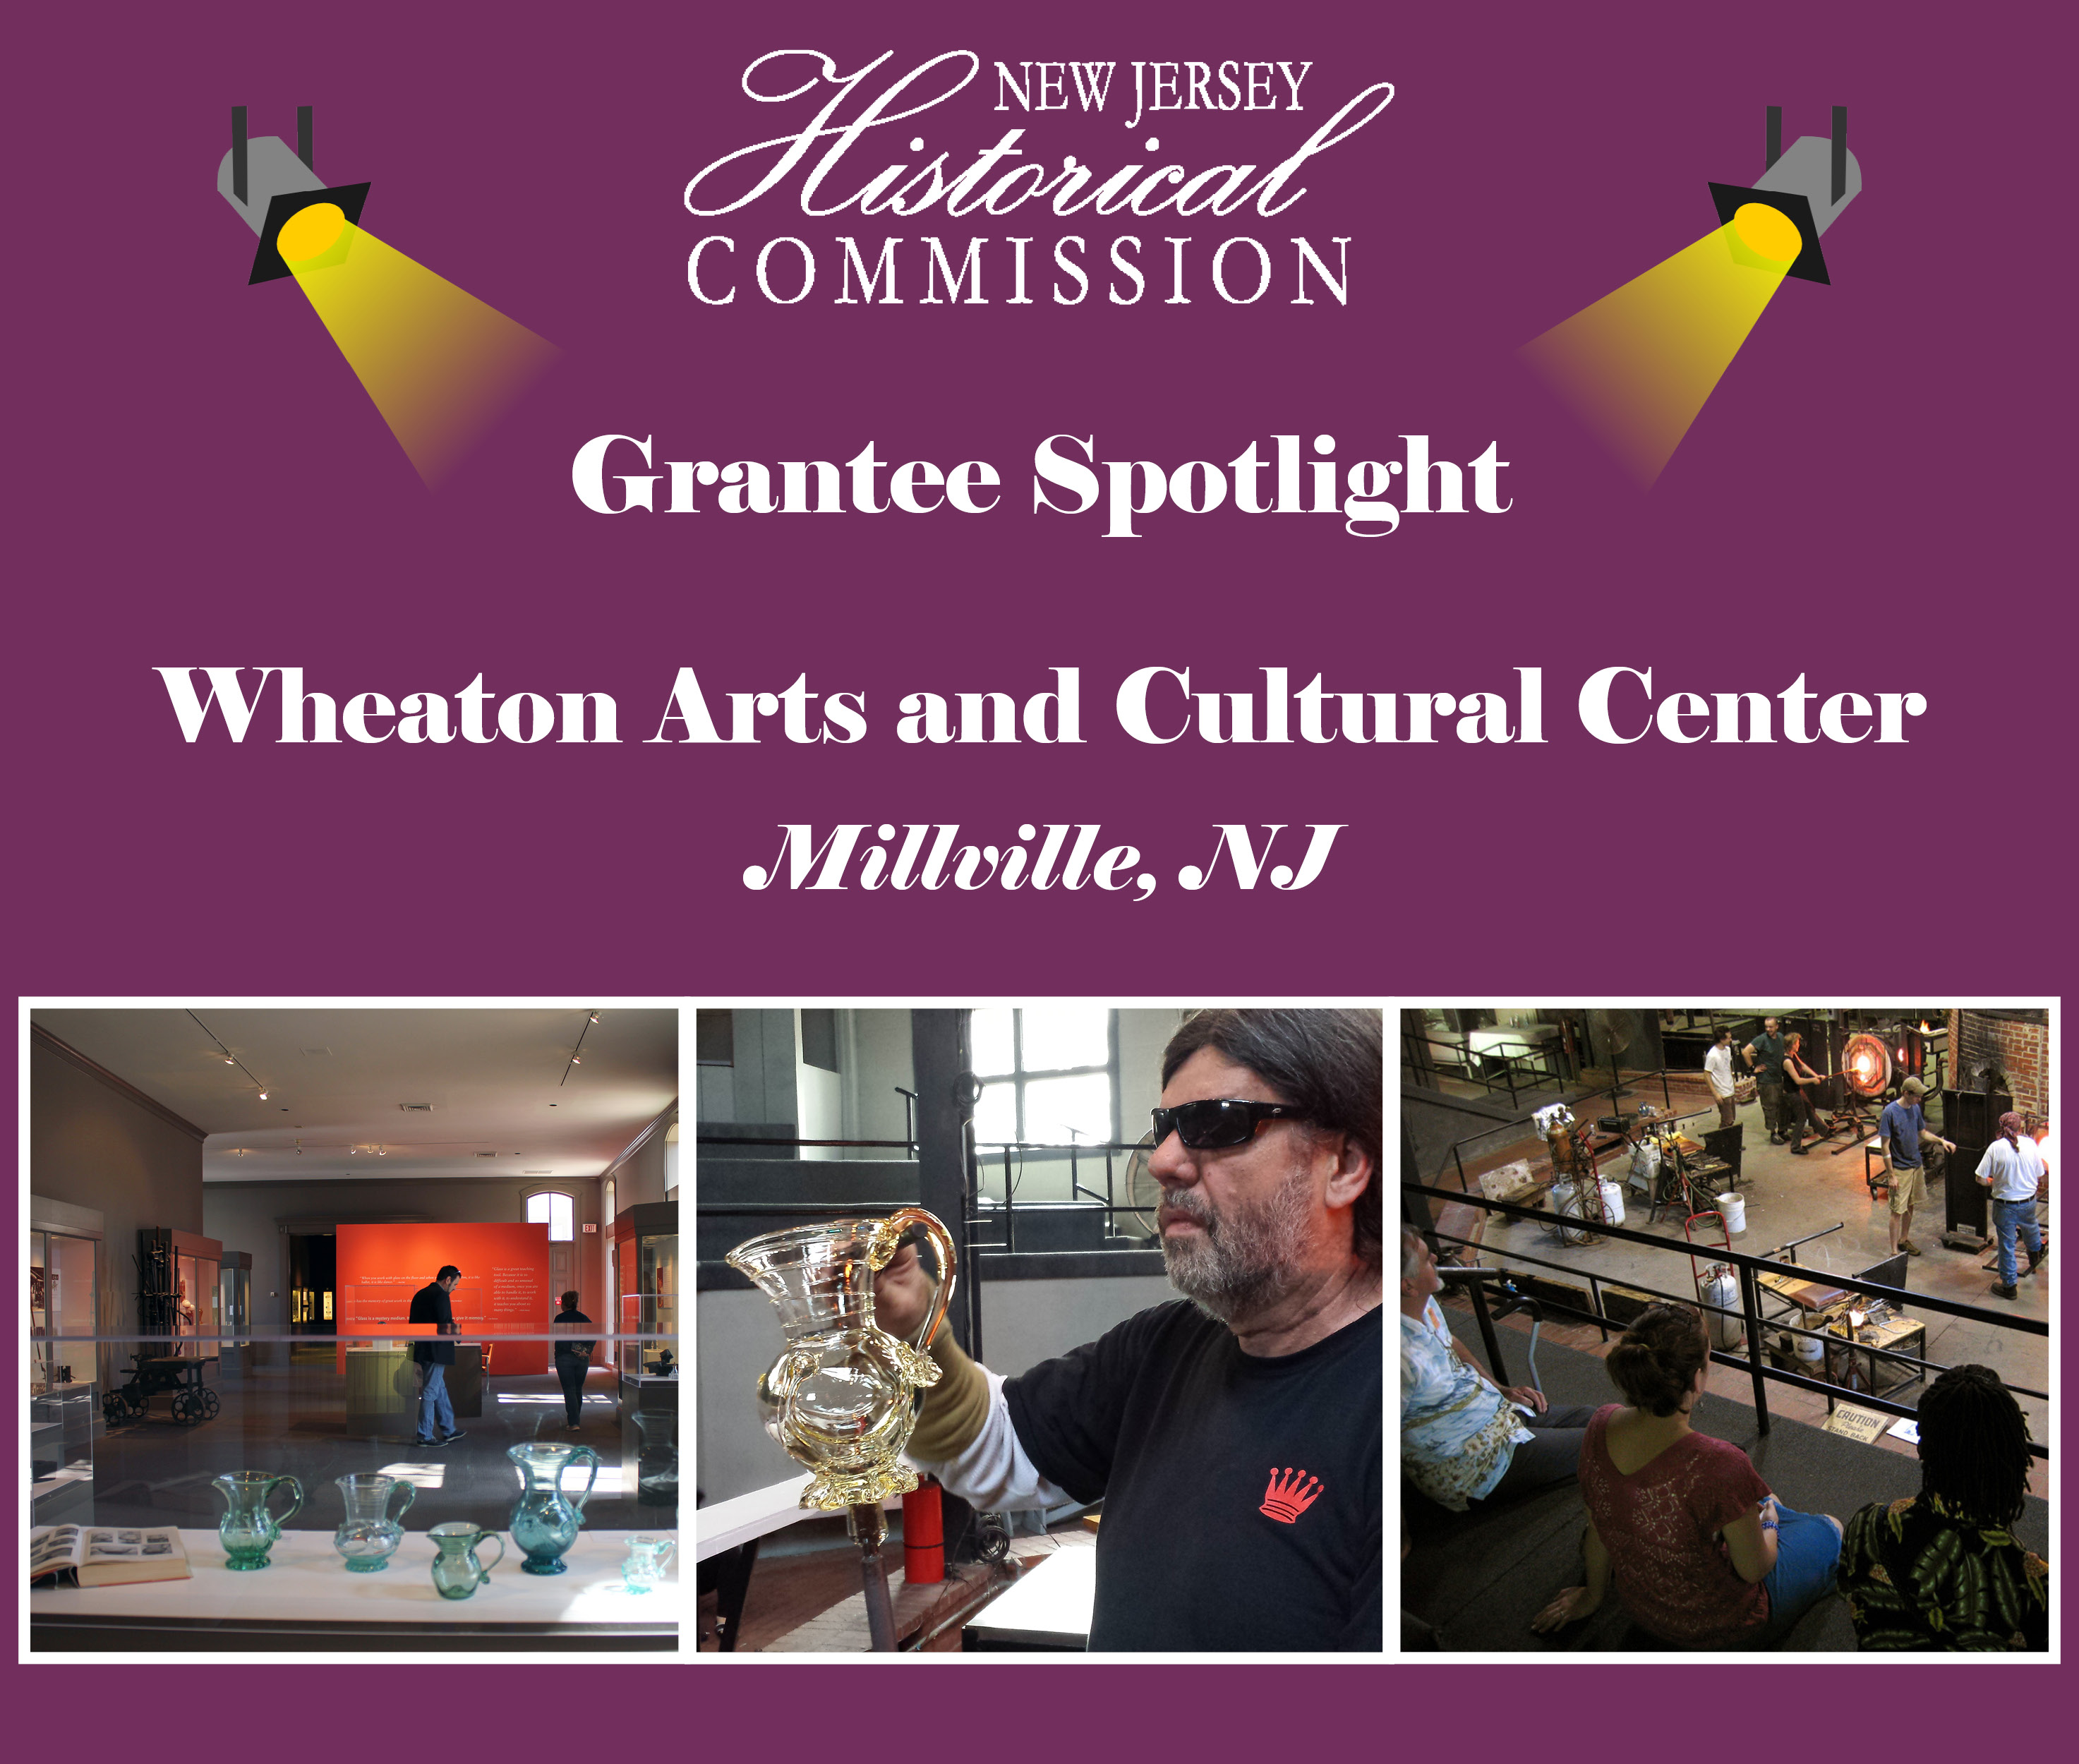 New Jersey Historical Commission (NJHC) Grantee Spotlight: Wheaton Arts and Cultural Center